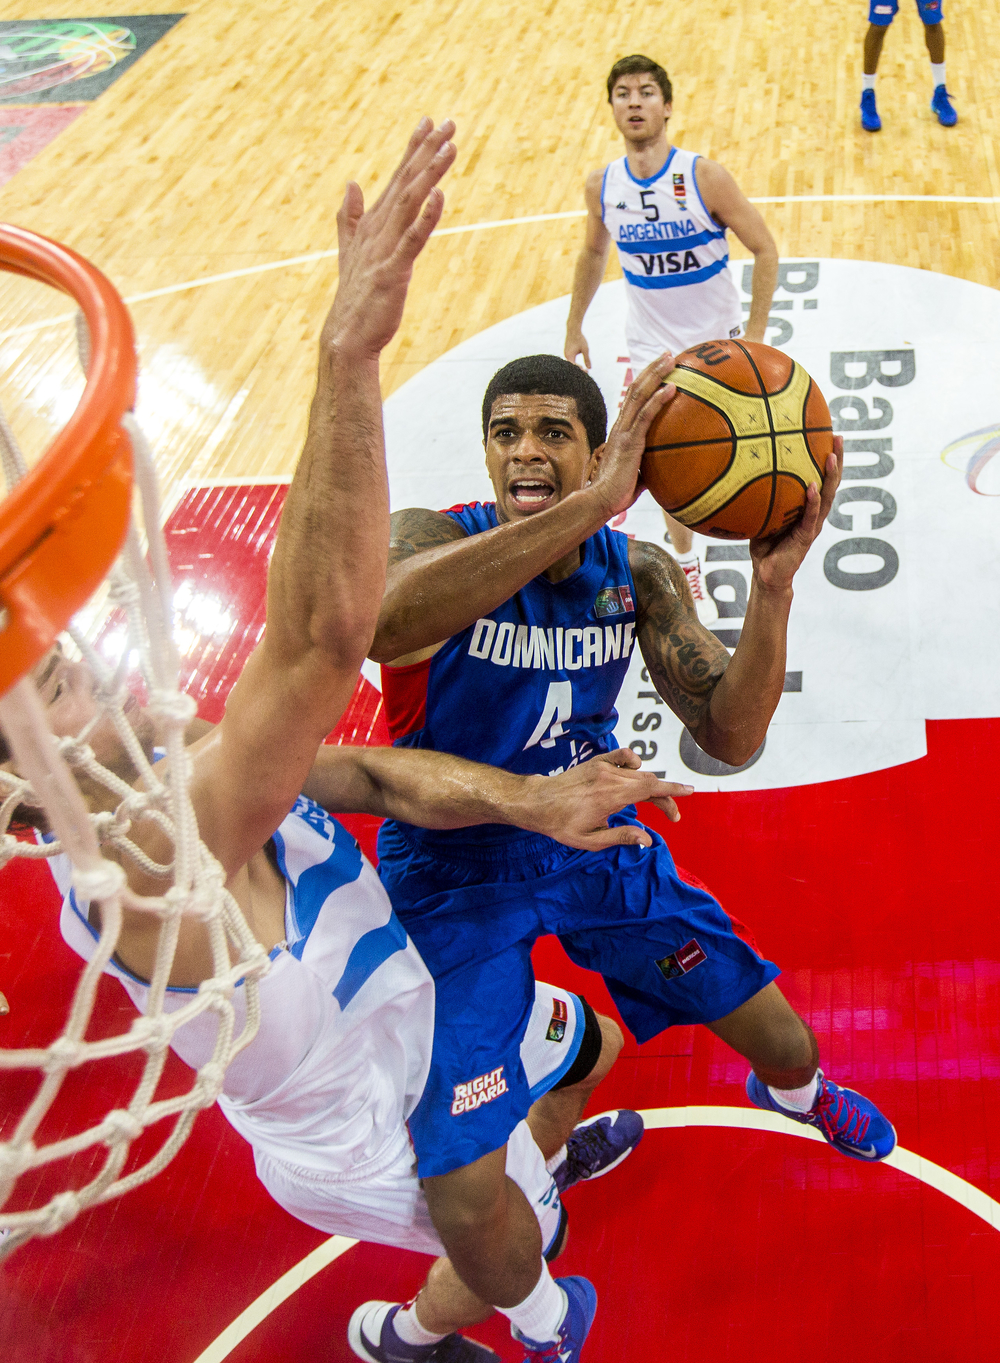 Edgar Sosa (Dominican Republic) Attacks the Basket